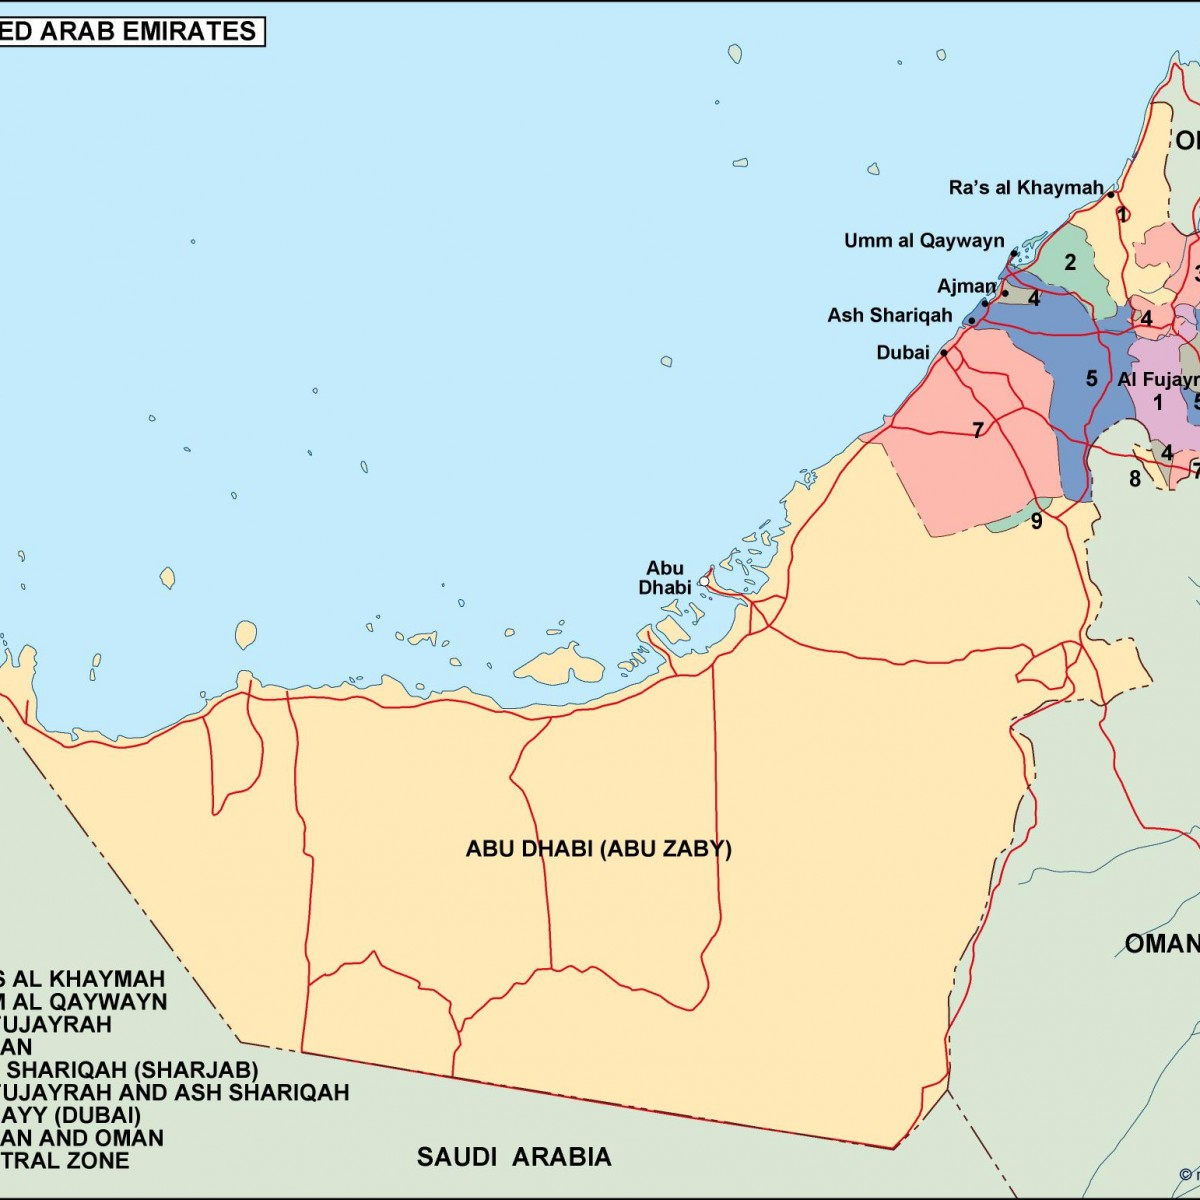 united arab emirates political map | Order and download united arab ...